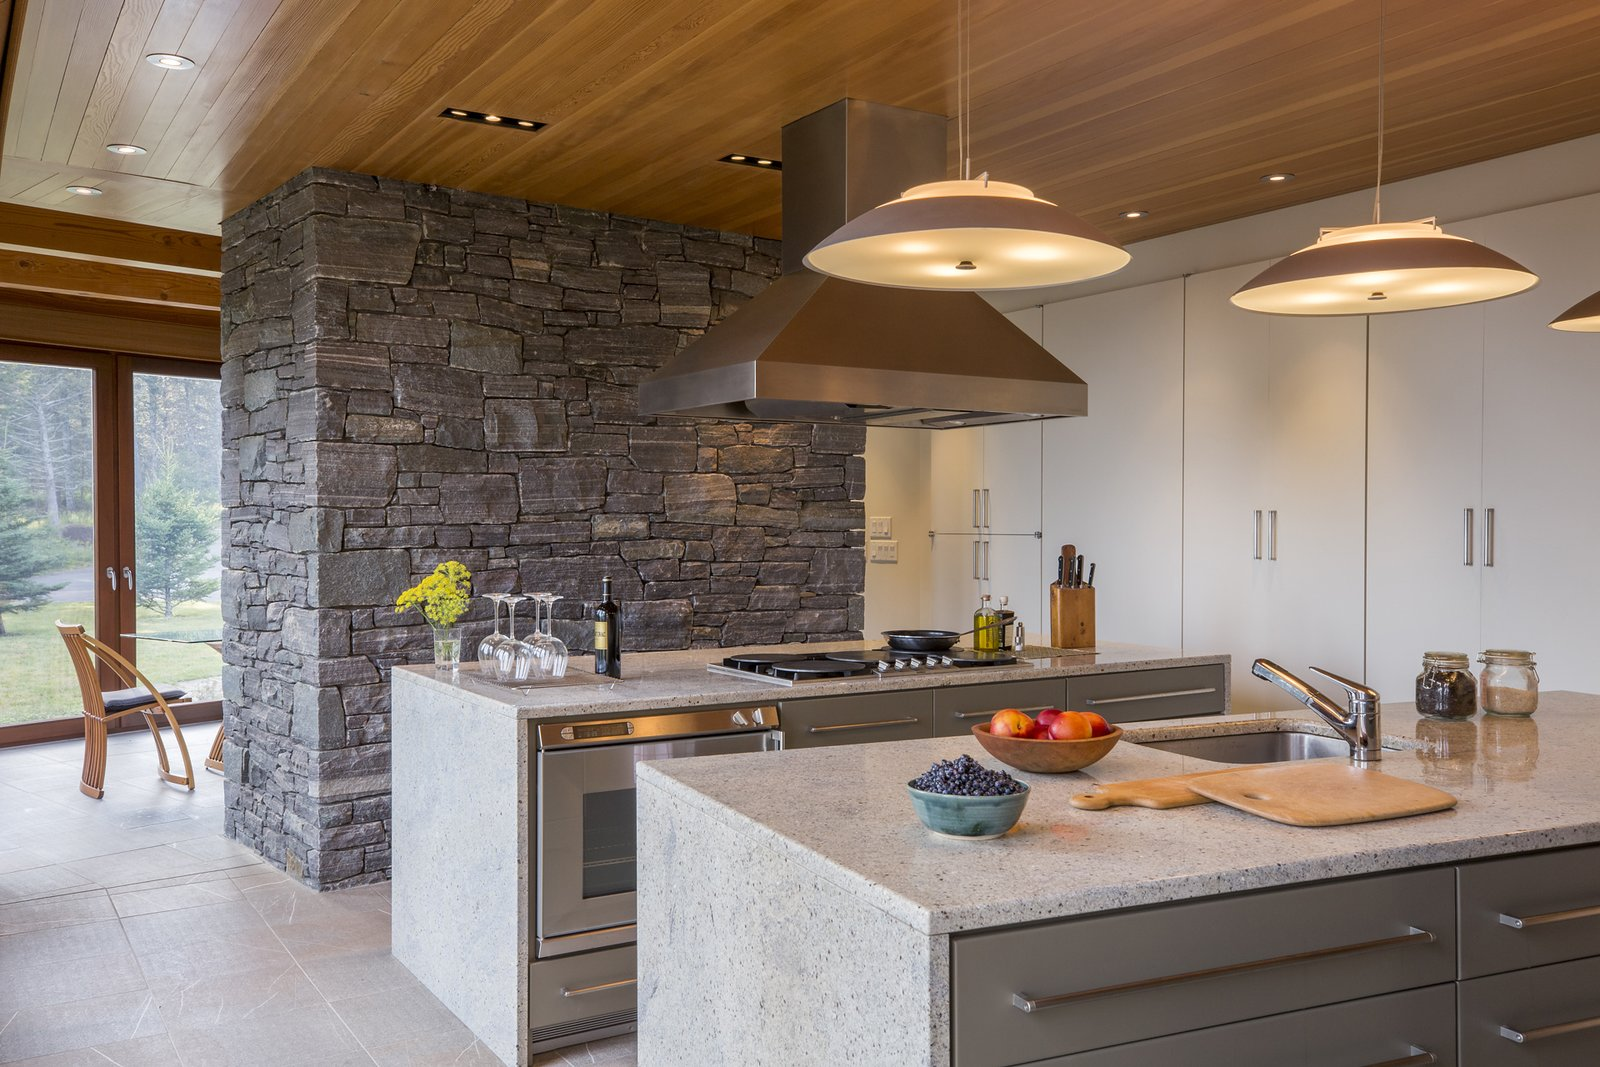 Kitchen, Granite, Colorful, Limestone, Recessed, Ceiling, Refrigerator, Wall Oven, Pendant, Cooktops, Range Hood, Dishwasher, and Undermount Kitchen, looking towards the dining room  Kitchen Limestone Colorful Ceiling Photos from Deep Cove House